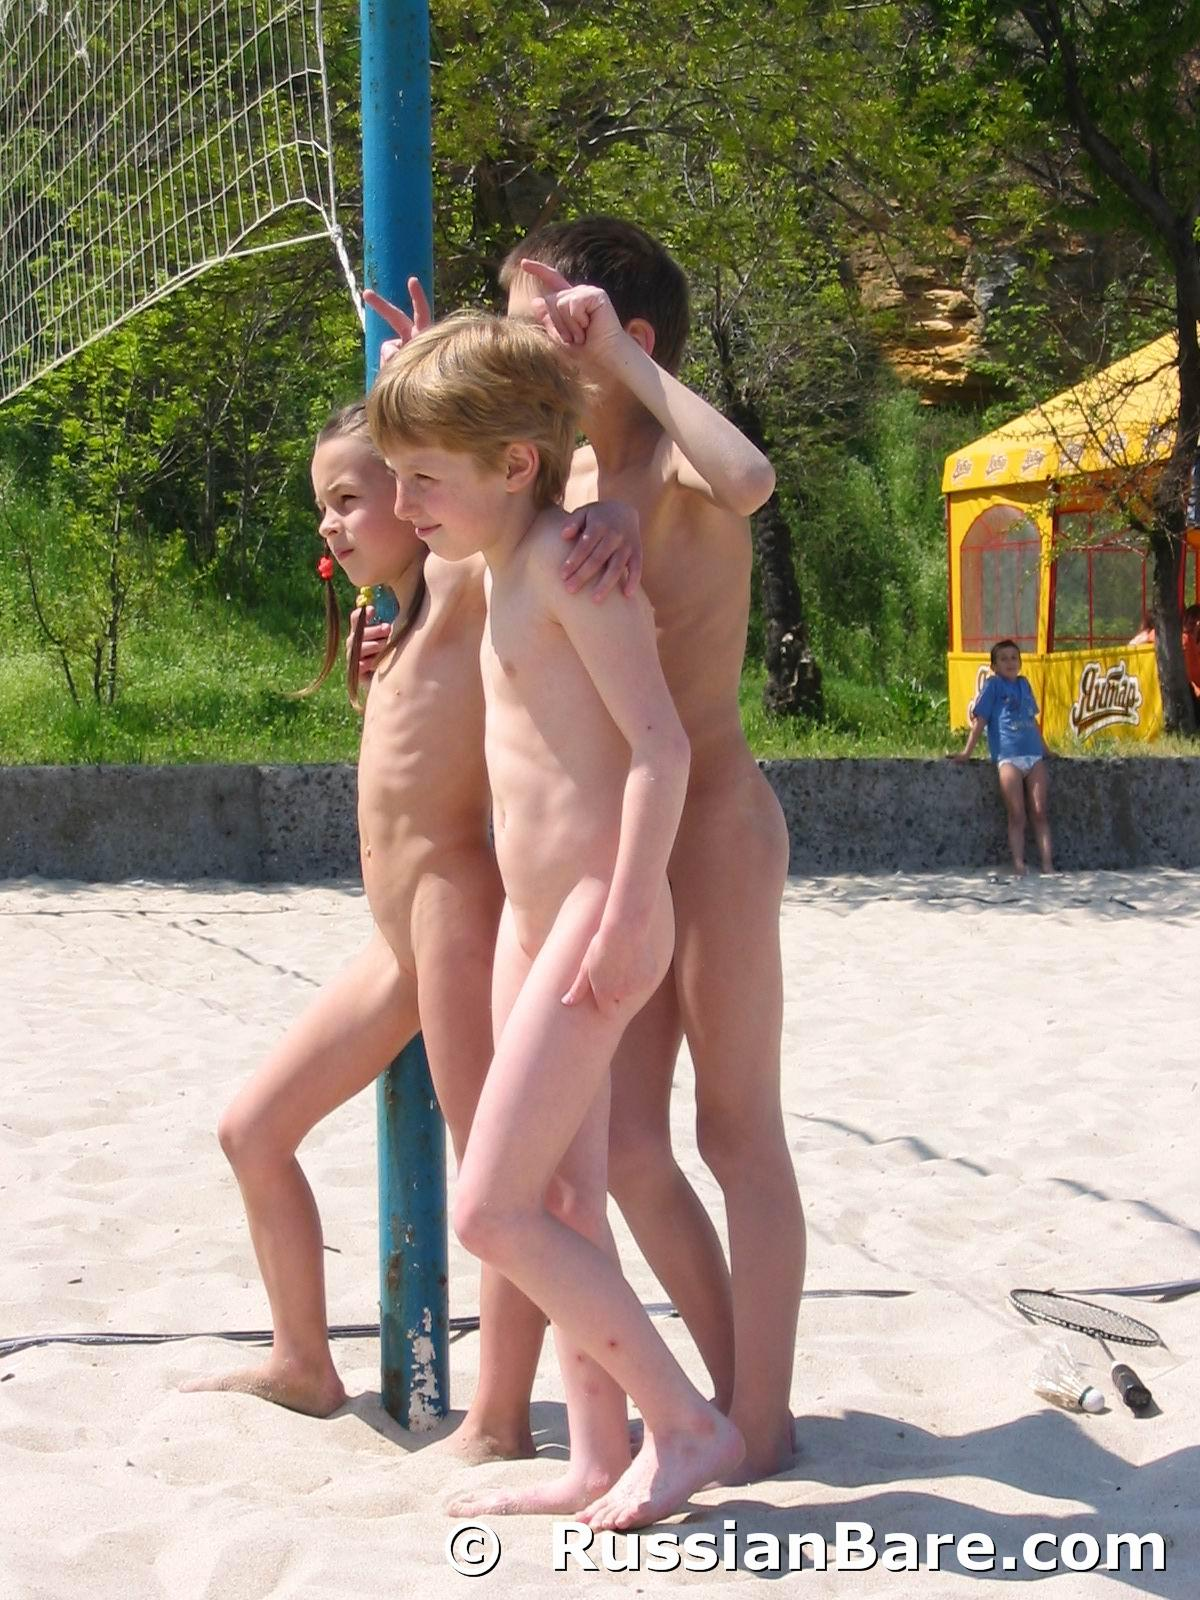 nudist fun